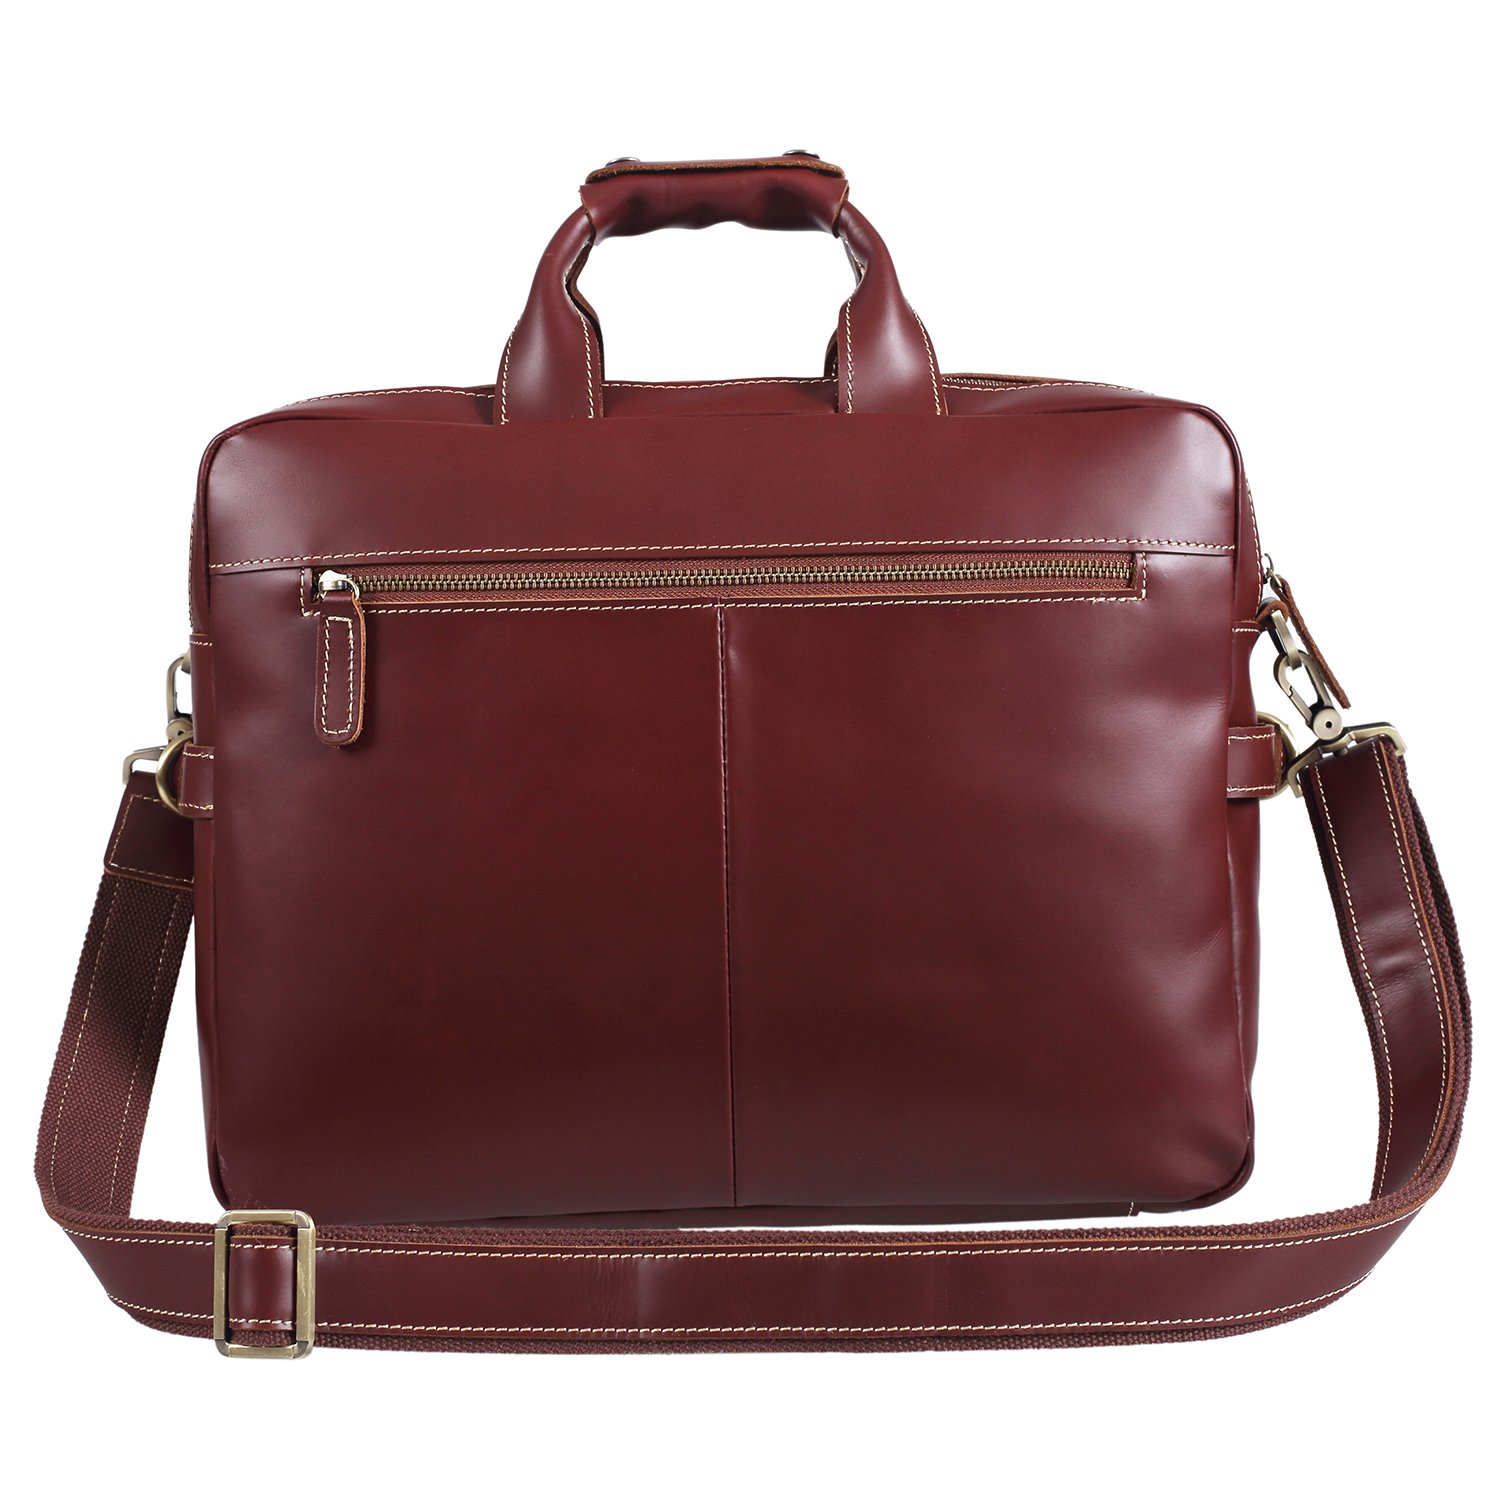 Polare Italian Leather Briefcase Should Bag Attache Fit 15.6inch Laptop by Polare (Image #4)